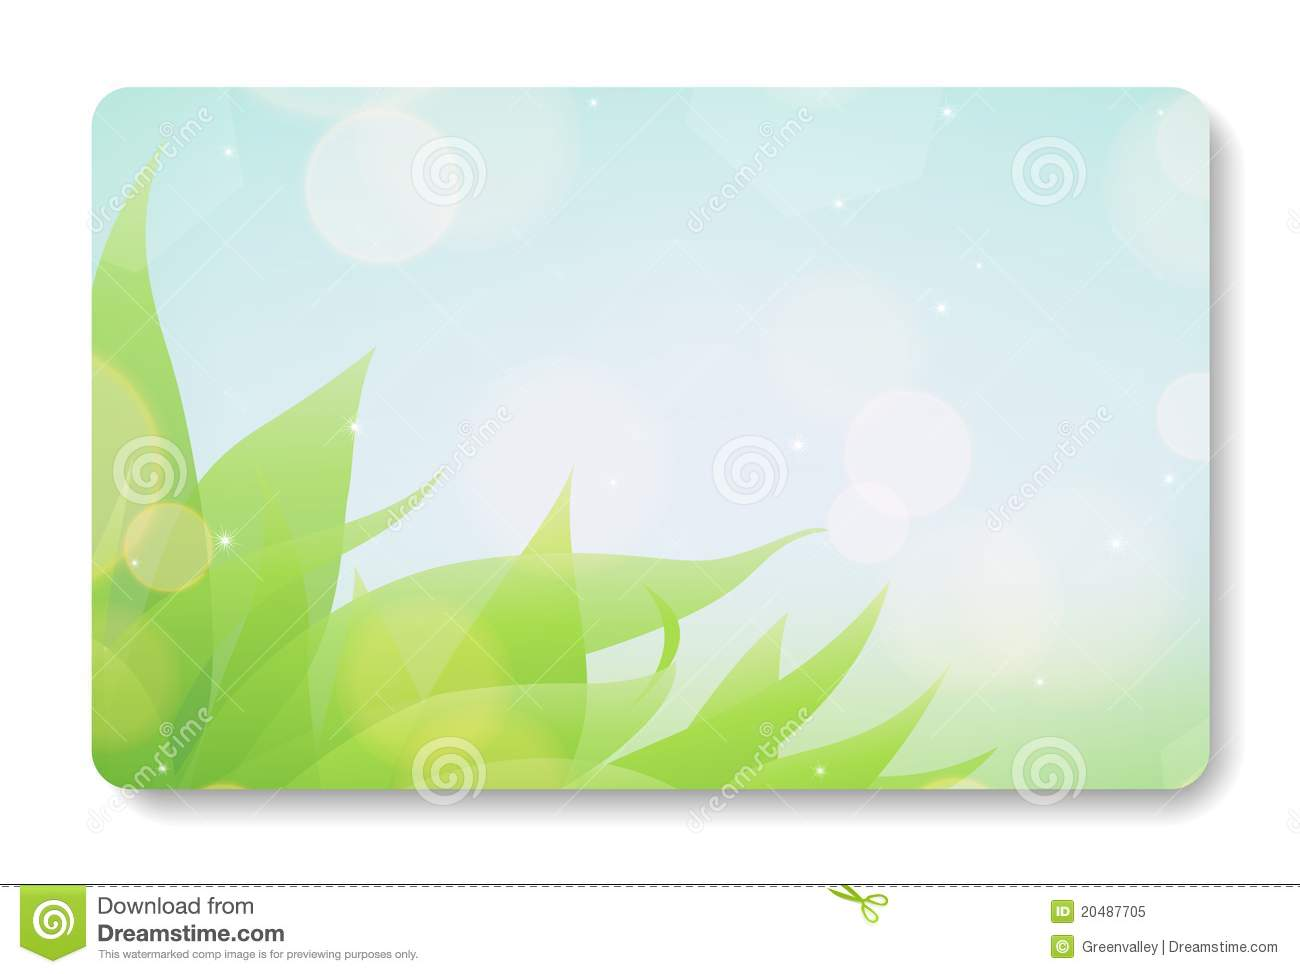 Business Card Background Royalty Free Stock Photo - Image: 20487705